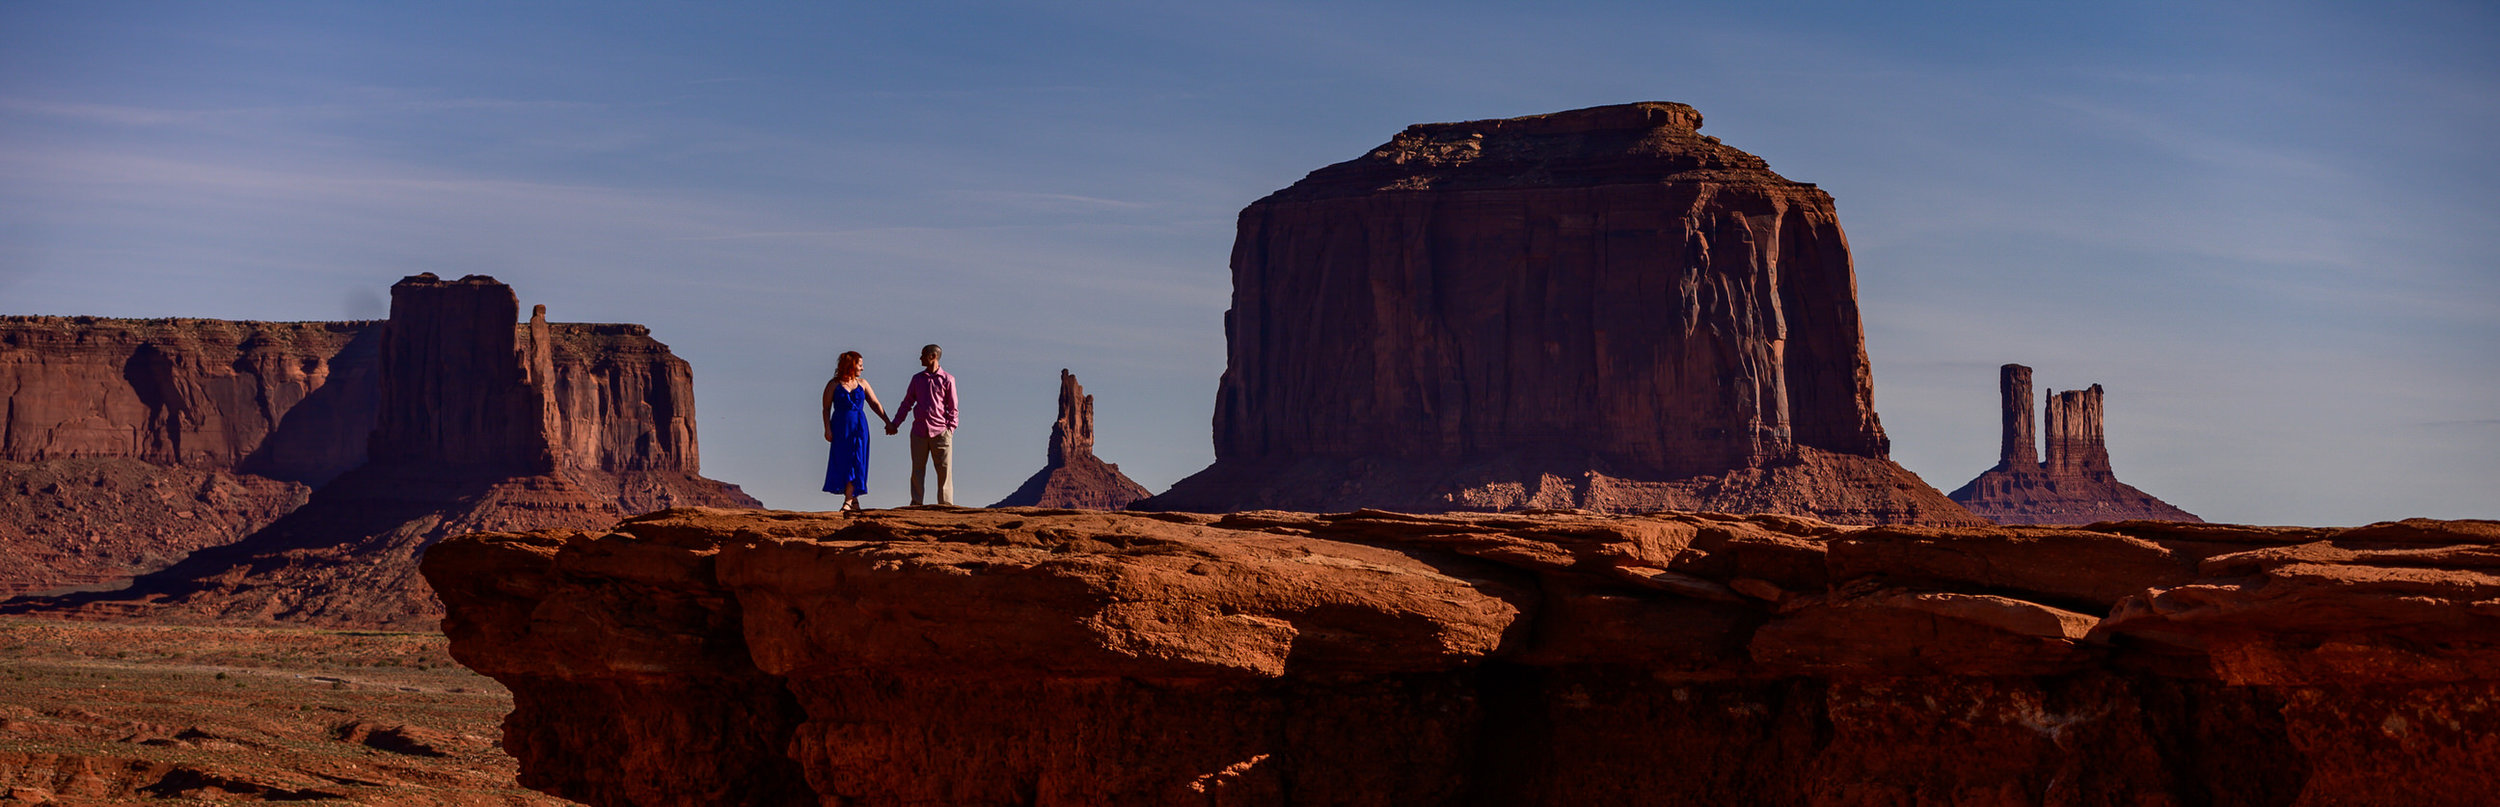 MonumentValleyEngagement-Alicia&Rob-0174.jpg